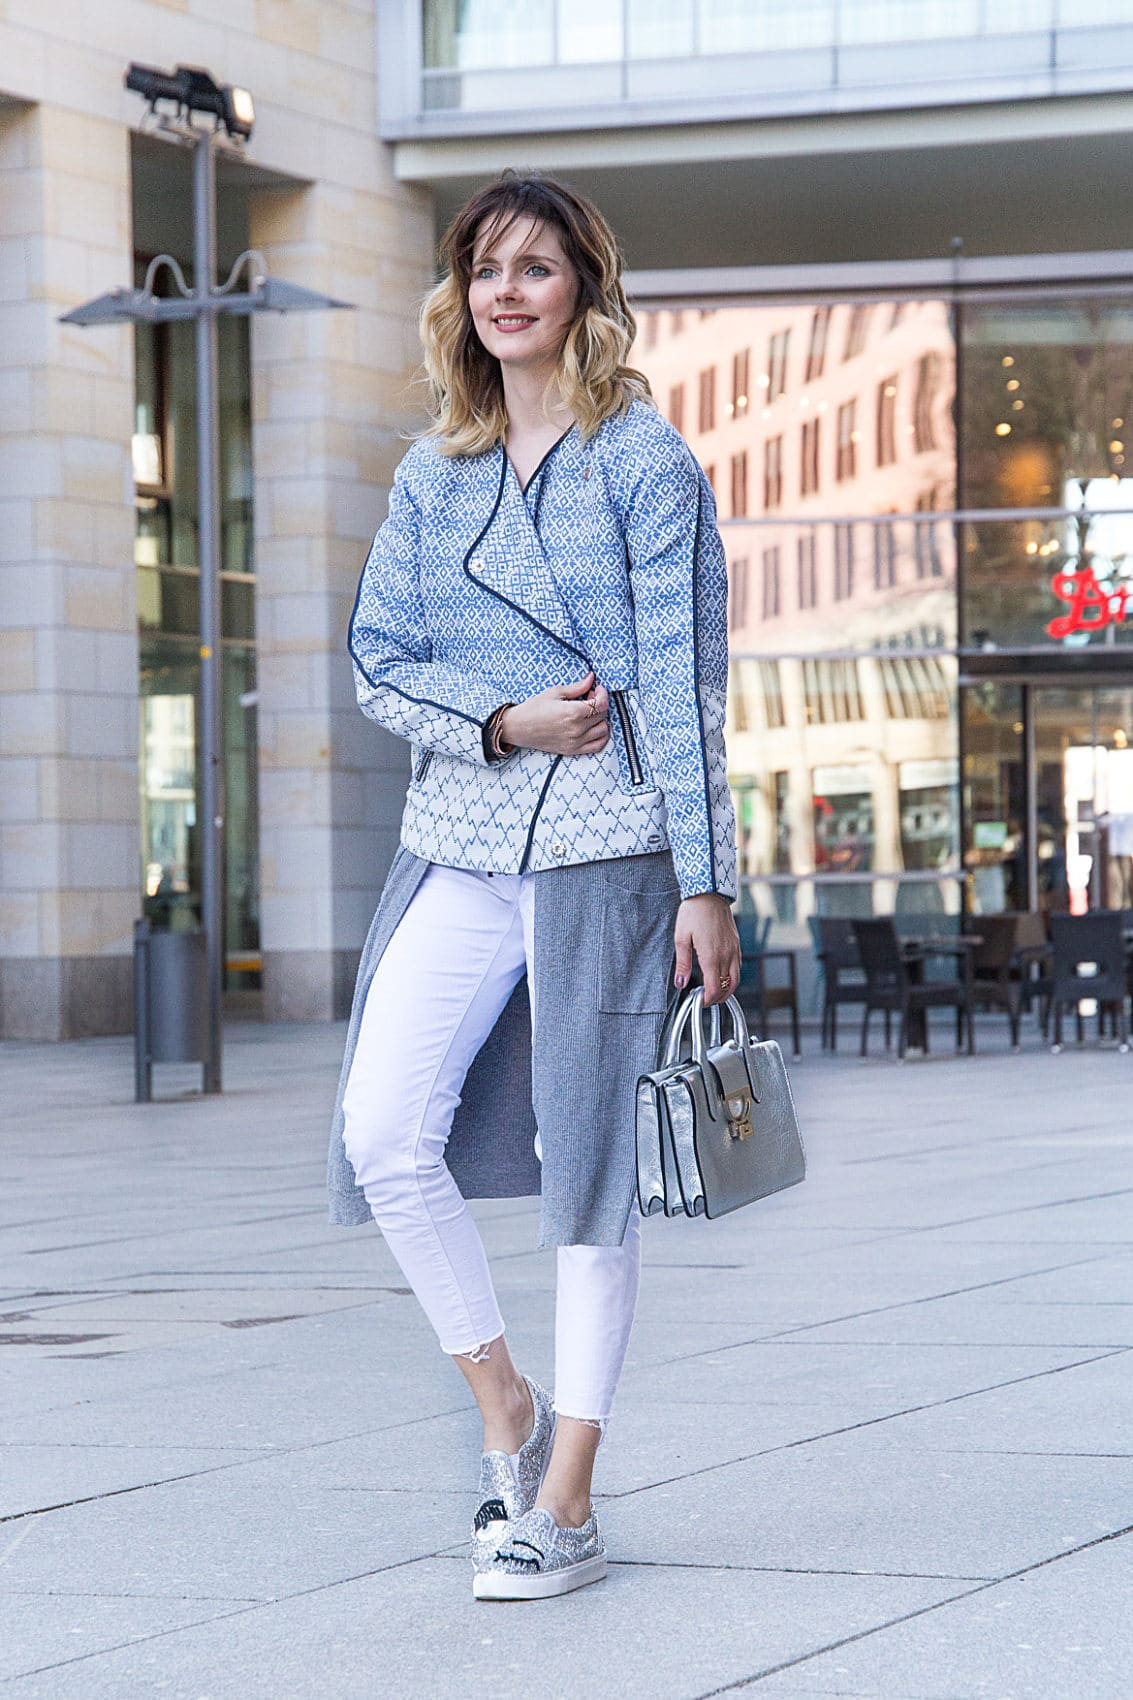 Frühling bei #kölnbloggt – Outfit mit Chiara Ferragni Flirting Loafers